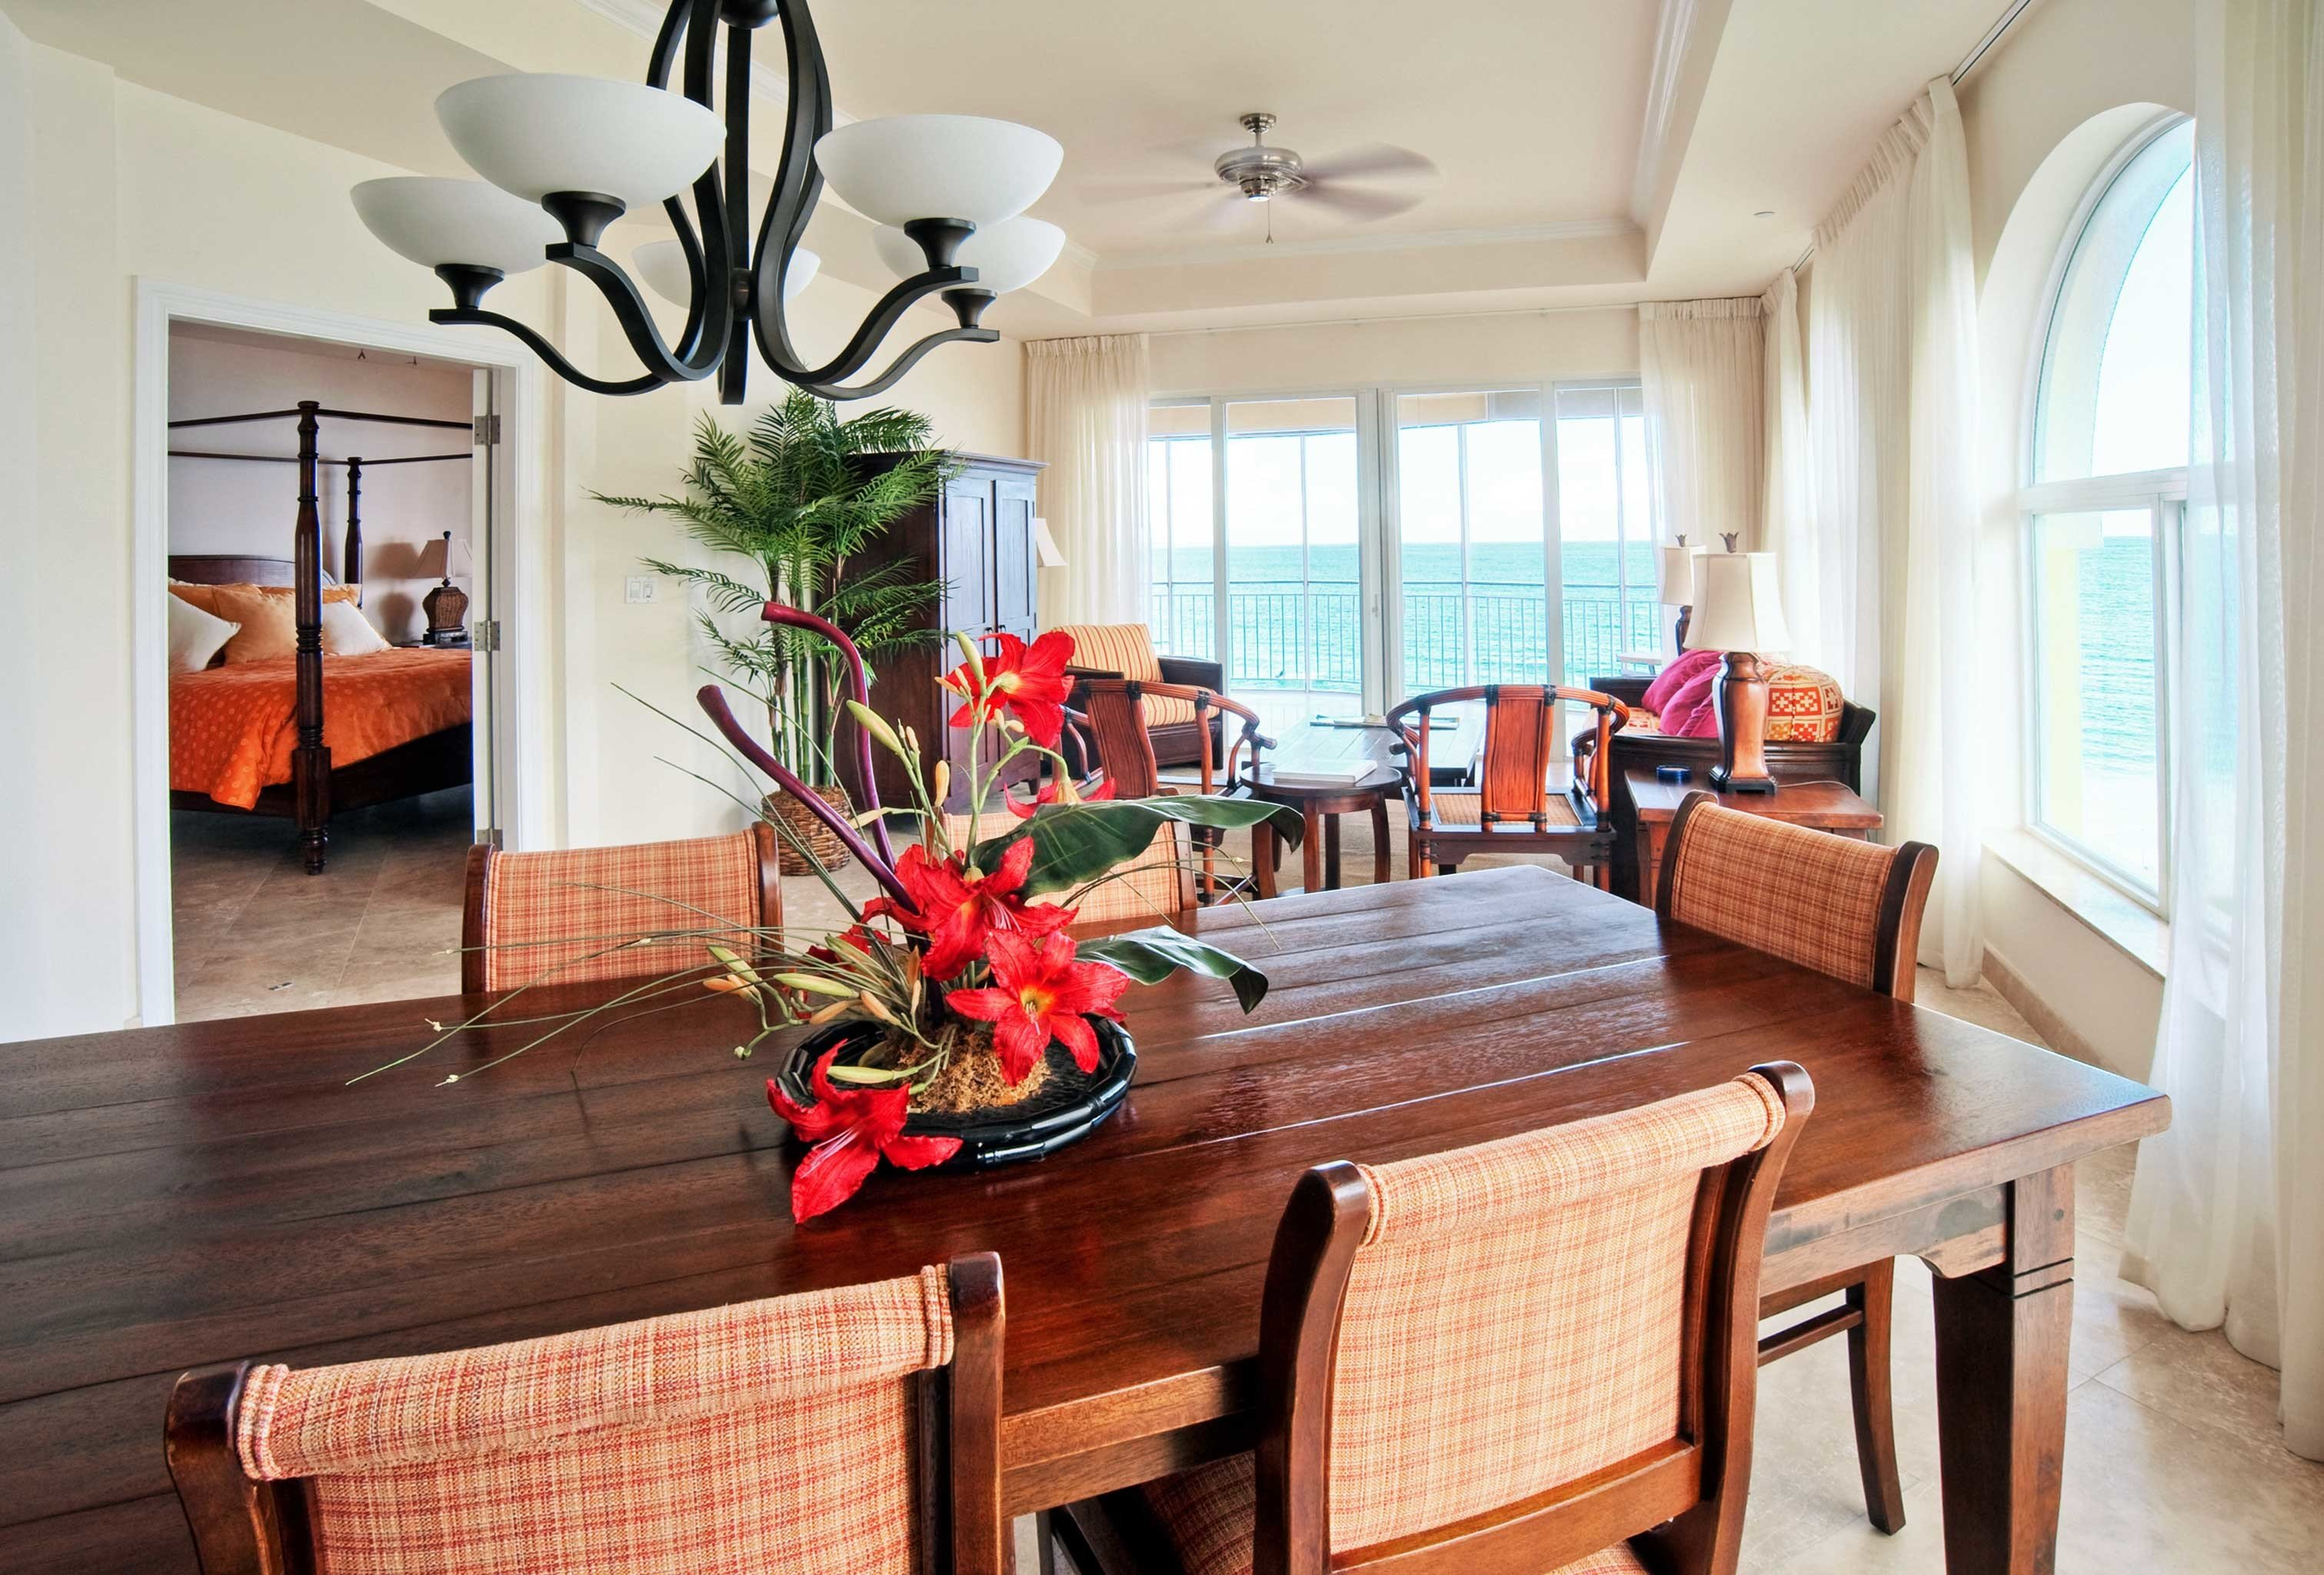 Dining Drink Eat Resort property chair home living room wooden cottage